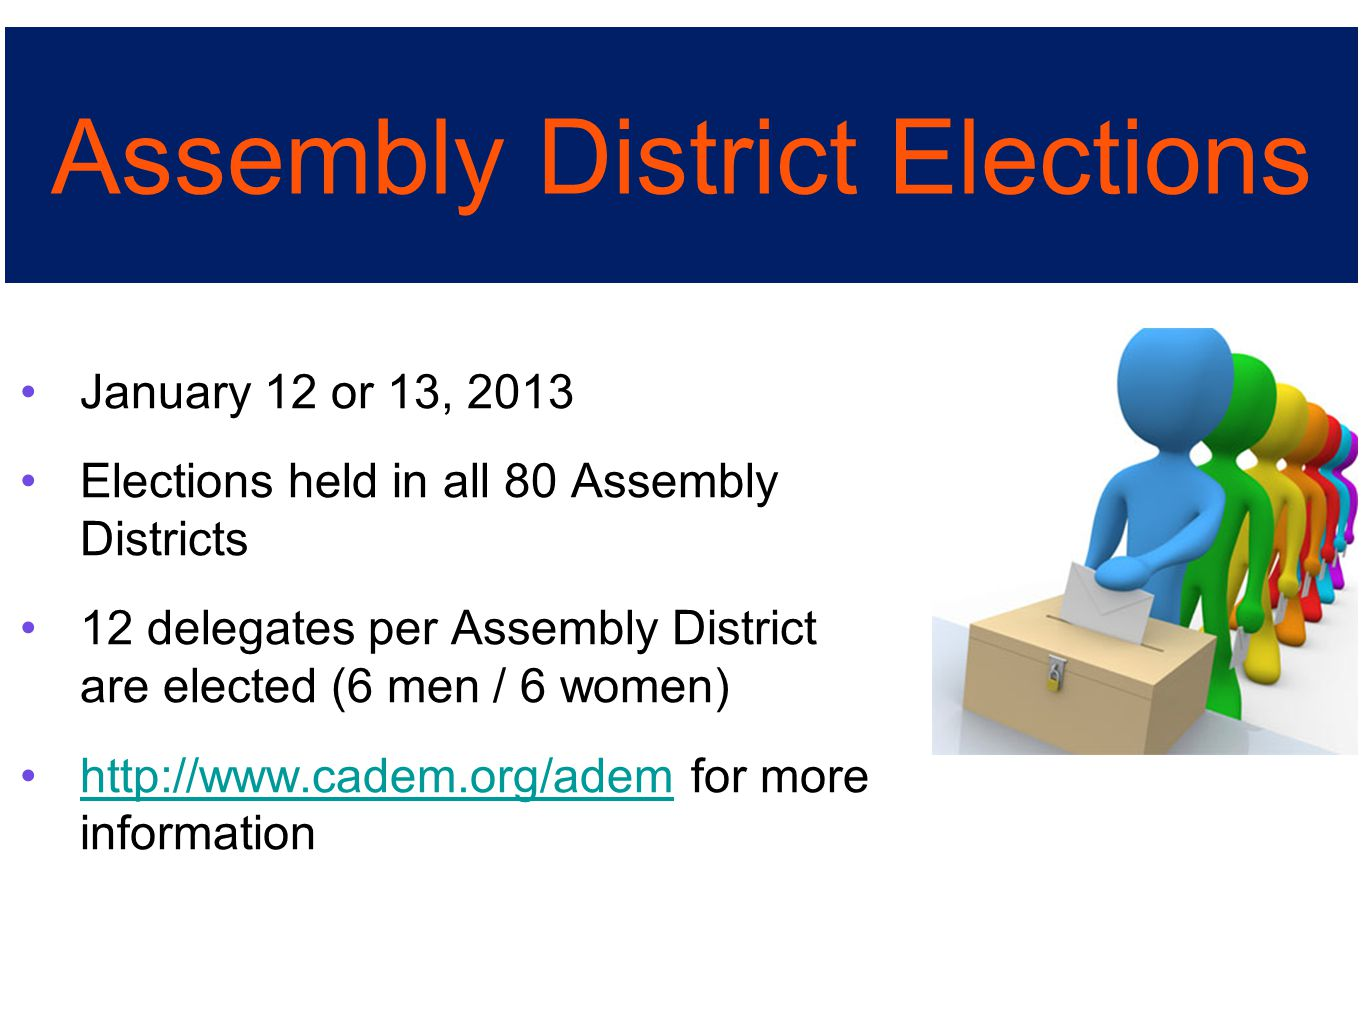 Assembly District Elections January 12 or 13, 2013 Elections held in all 80 Assembly Districts 12 delegates per Assembly District are elected (6 men / 6 women) http://www.cadem.org/adem for more informationhttp://www.cadem.org/adem